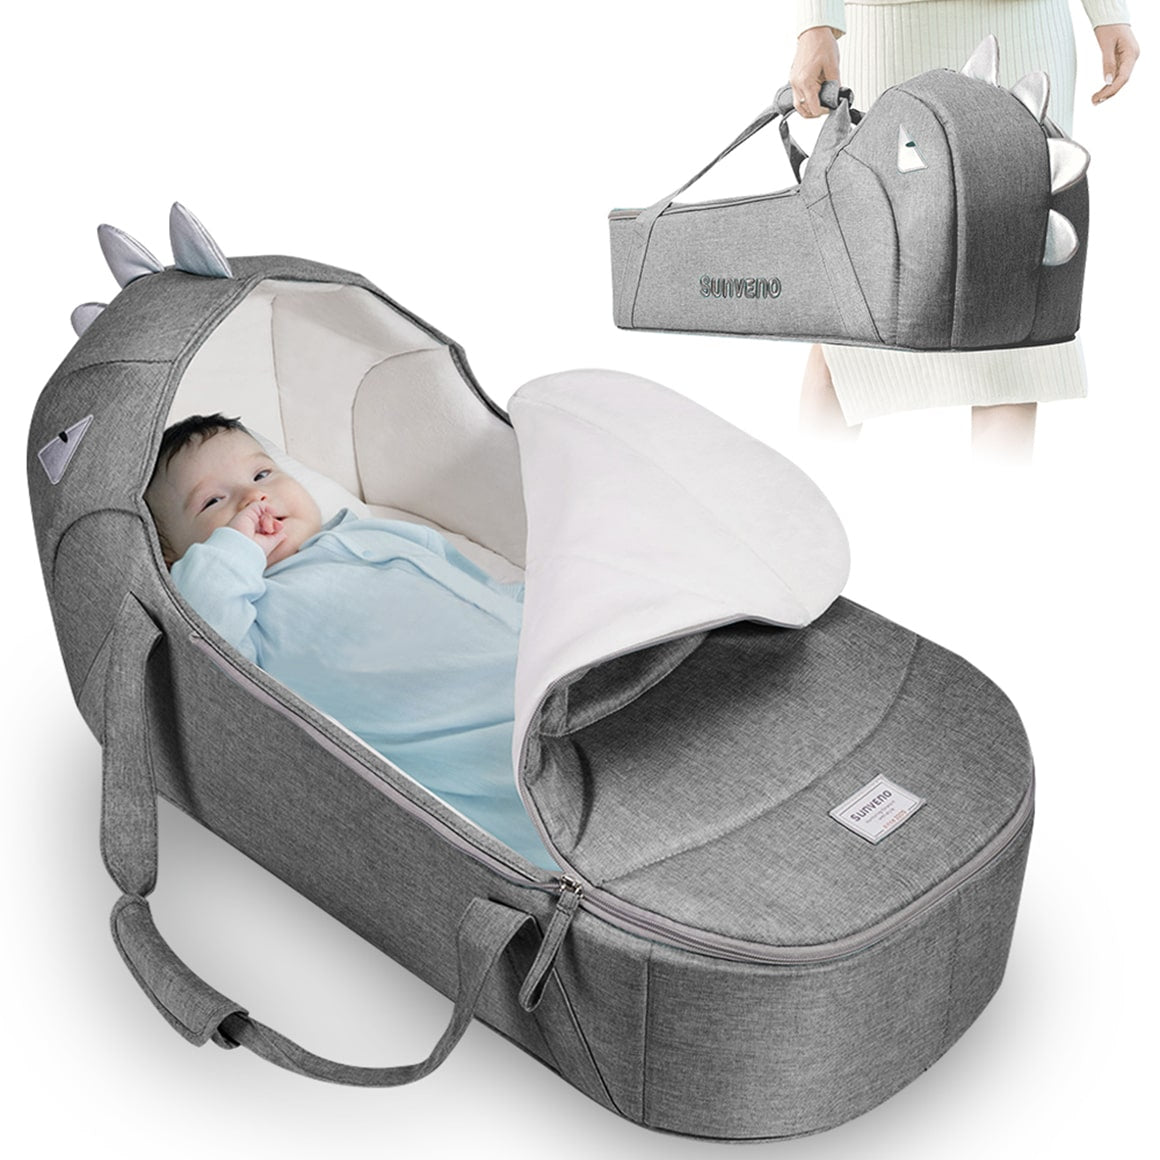 Sunveno Baby Bed & Lounger